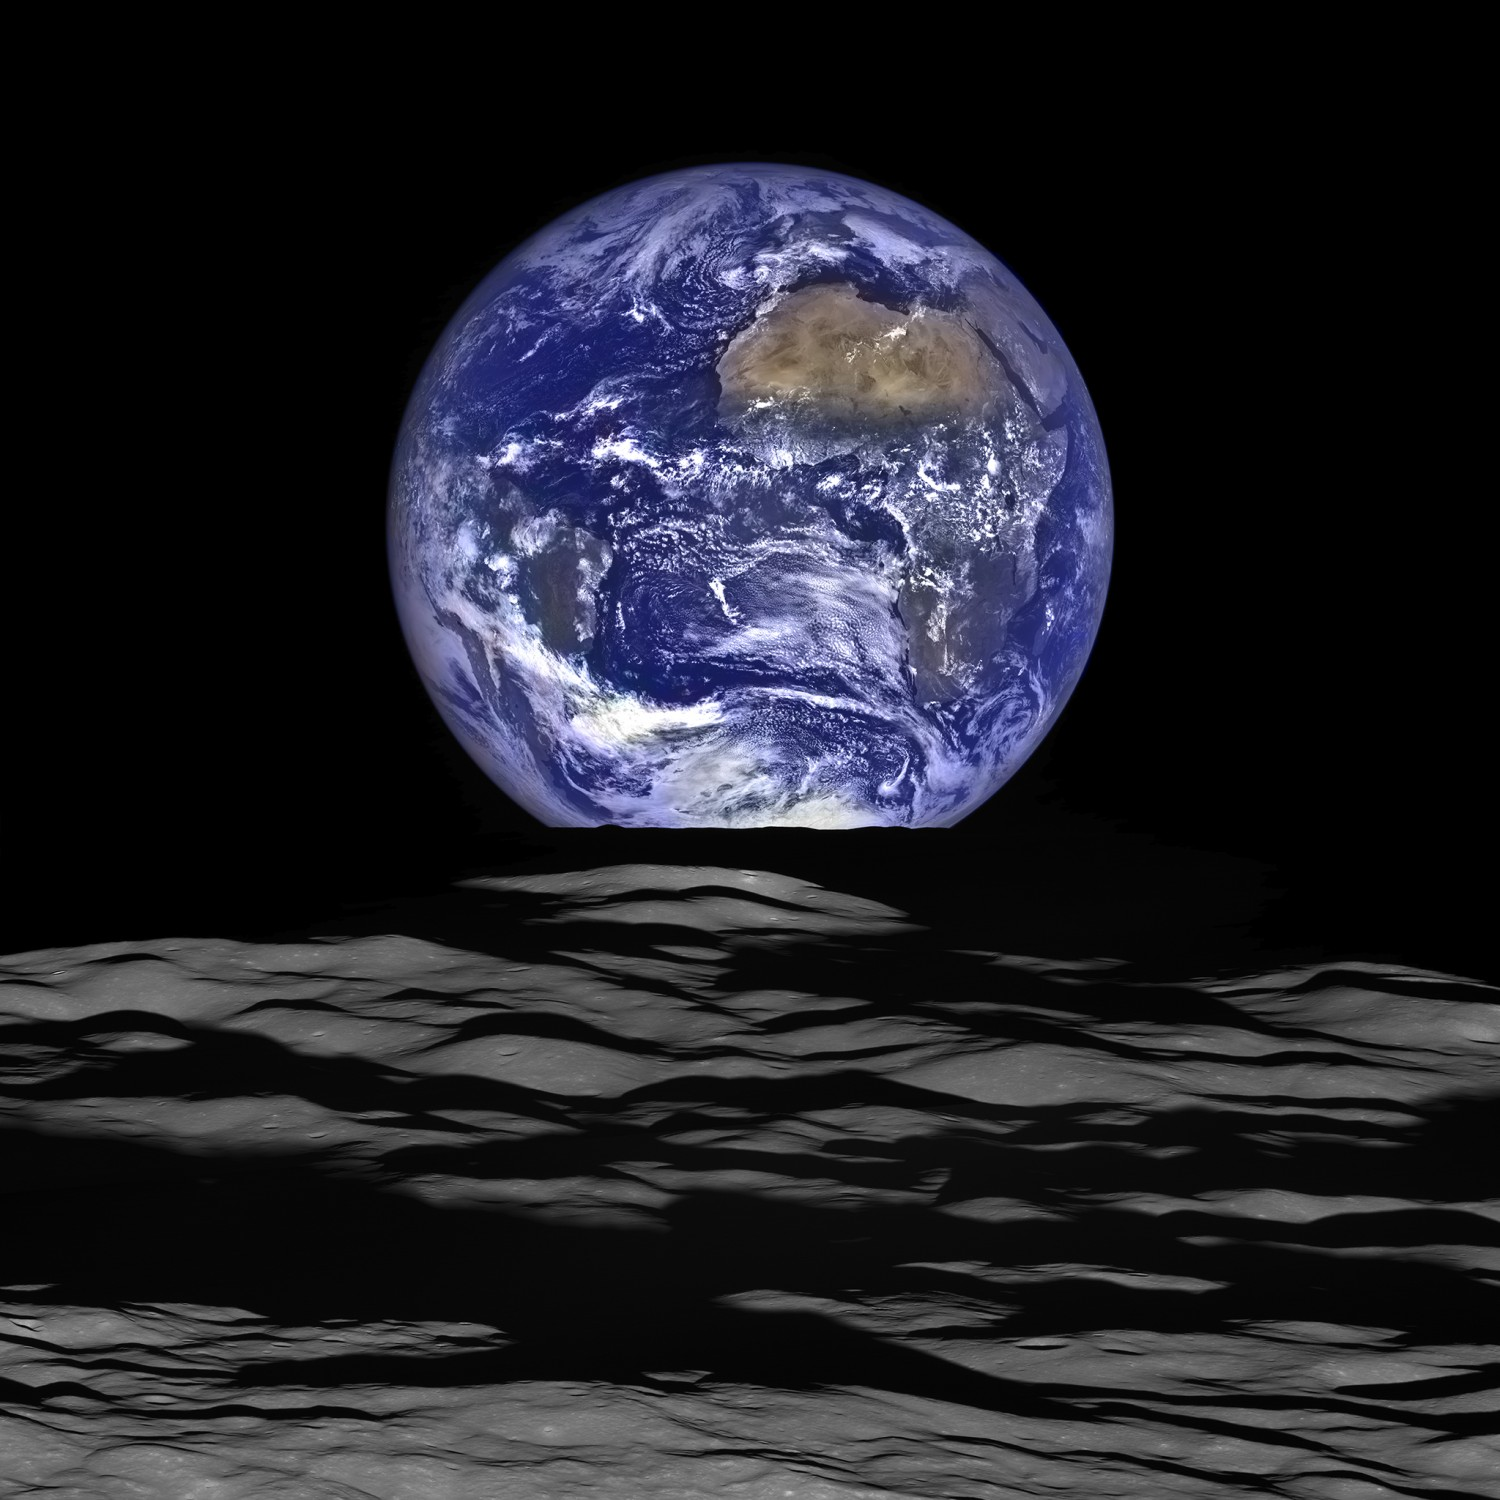 Earth by NASA's Lunar Reconnaissance Orbiter.